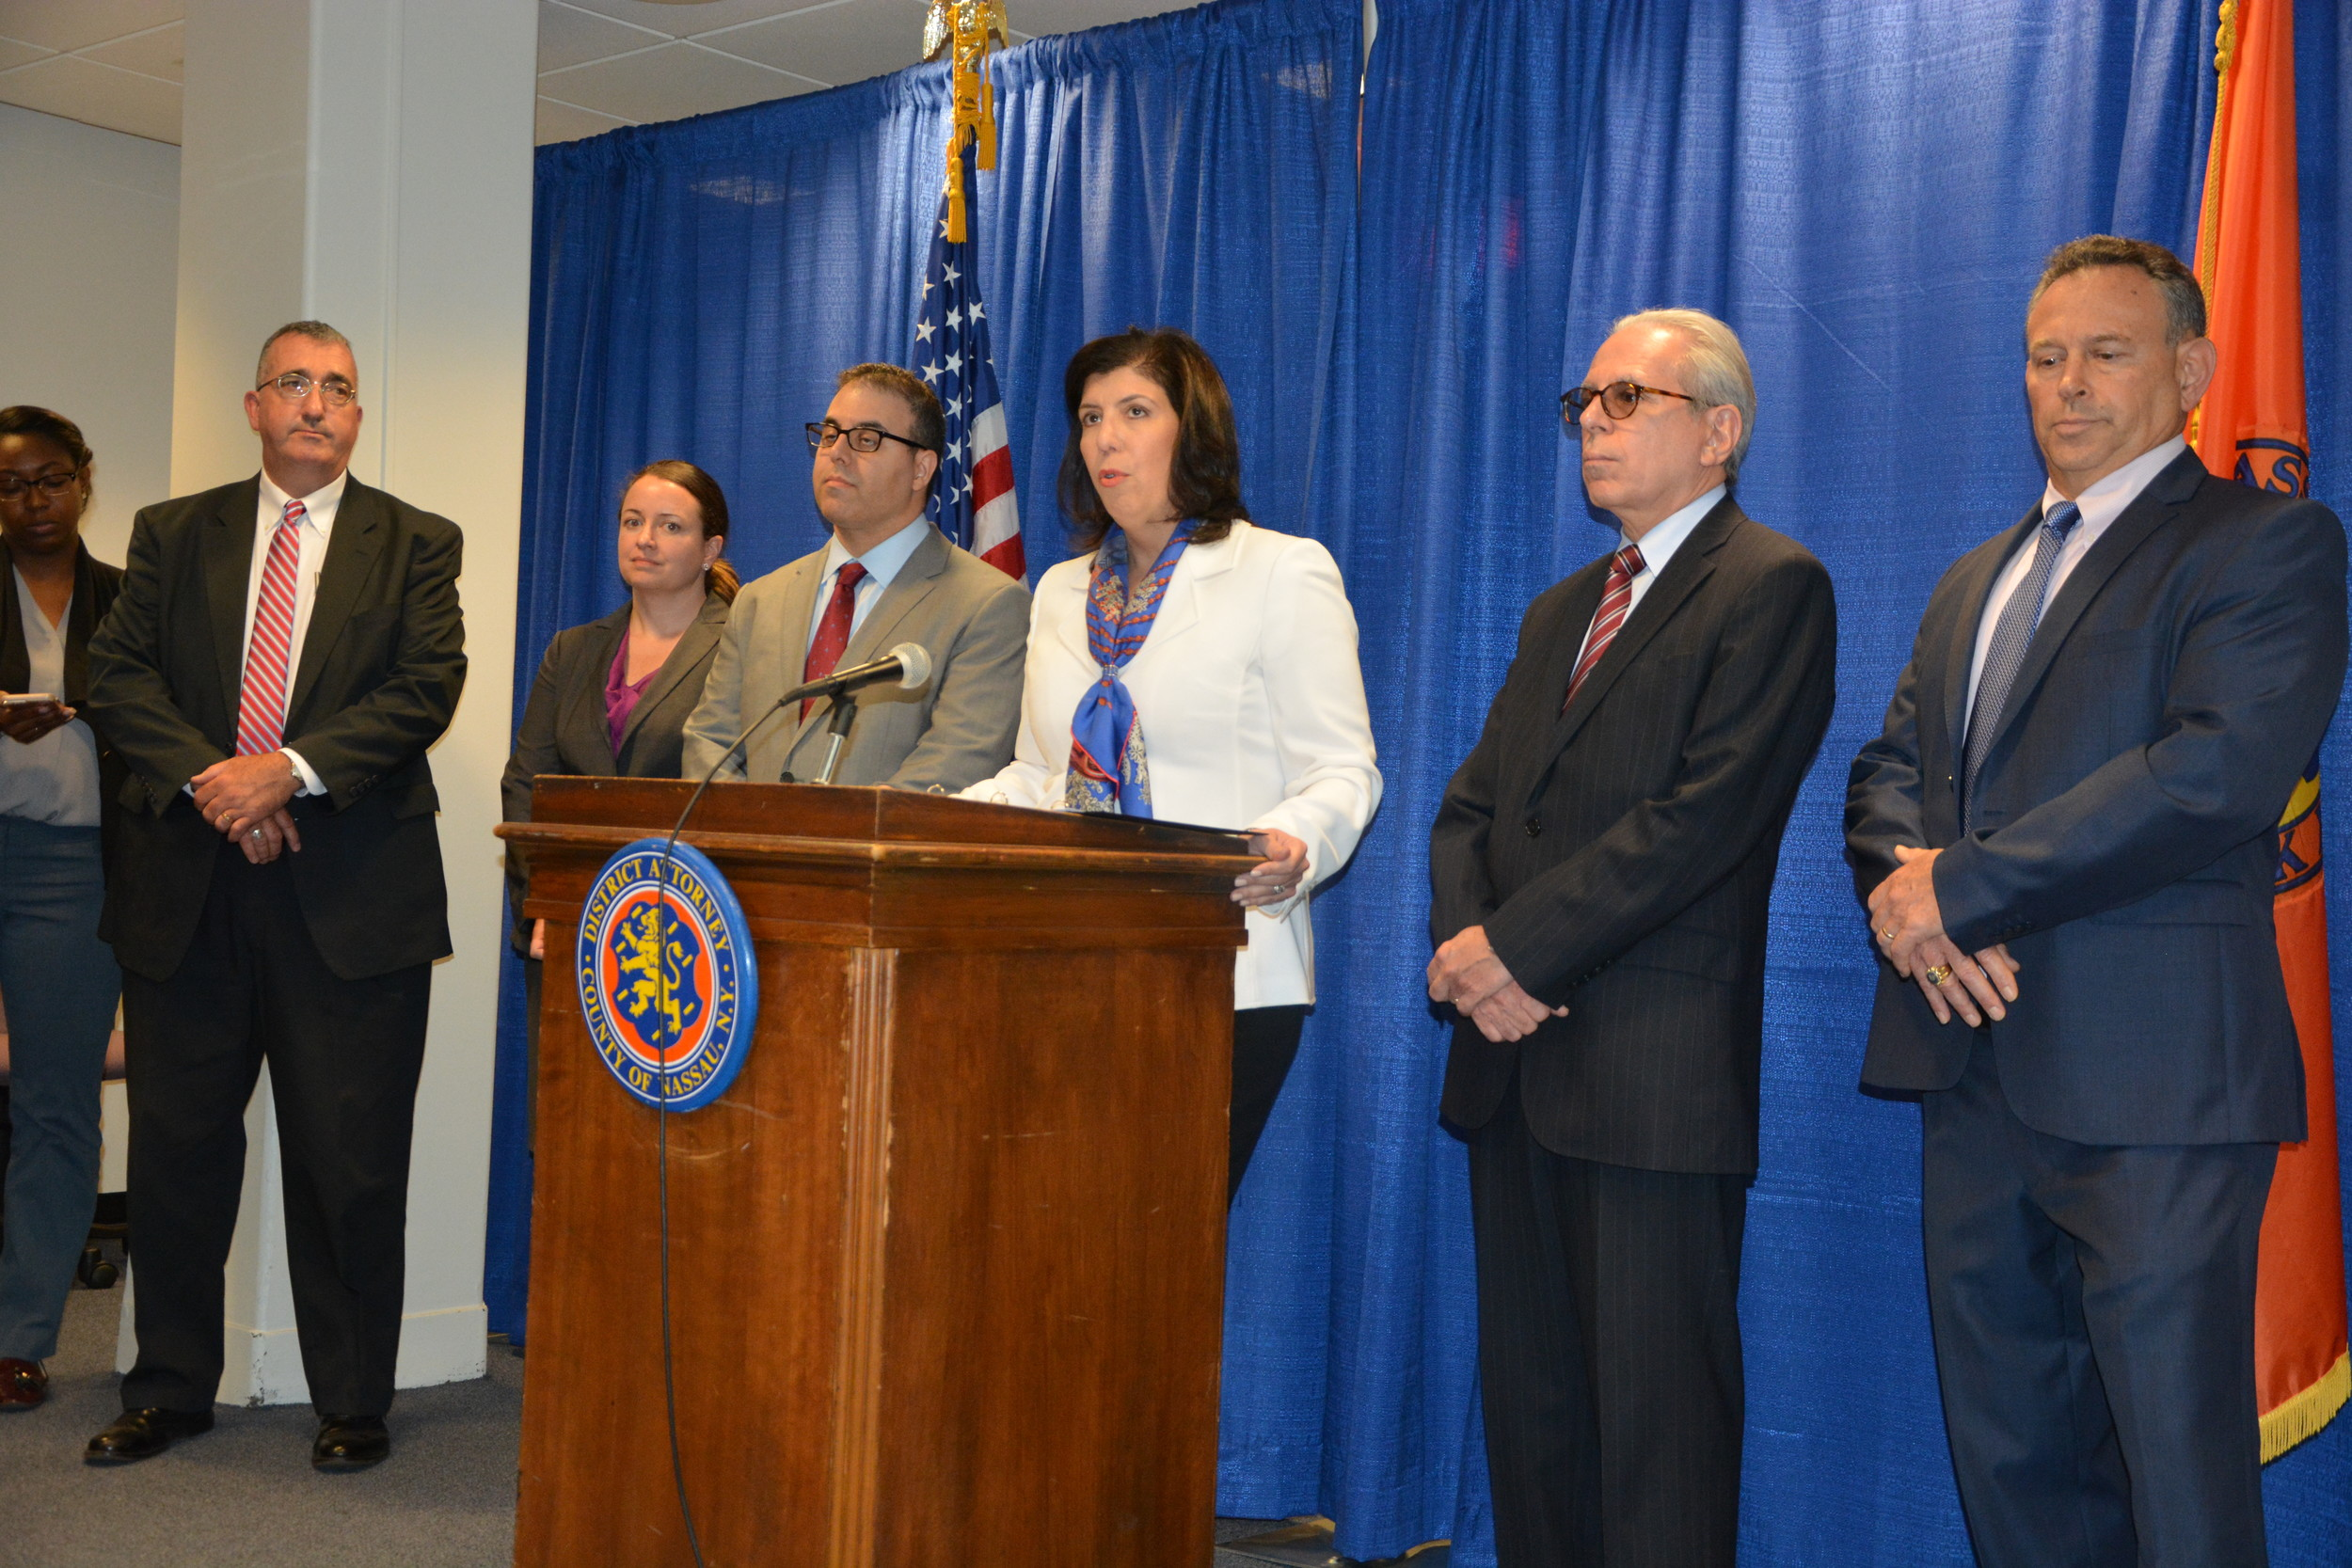 Nassau County District Attorney Madeline Singas held a press conference following the indictments on Thursday, June 29.